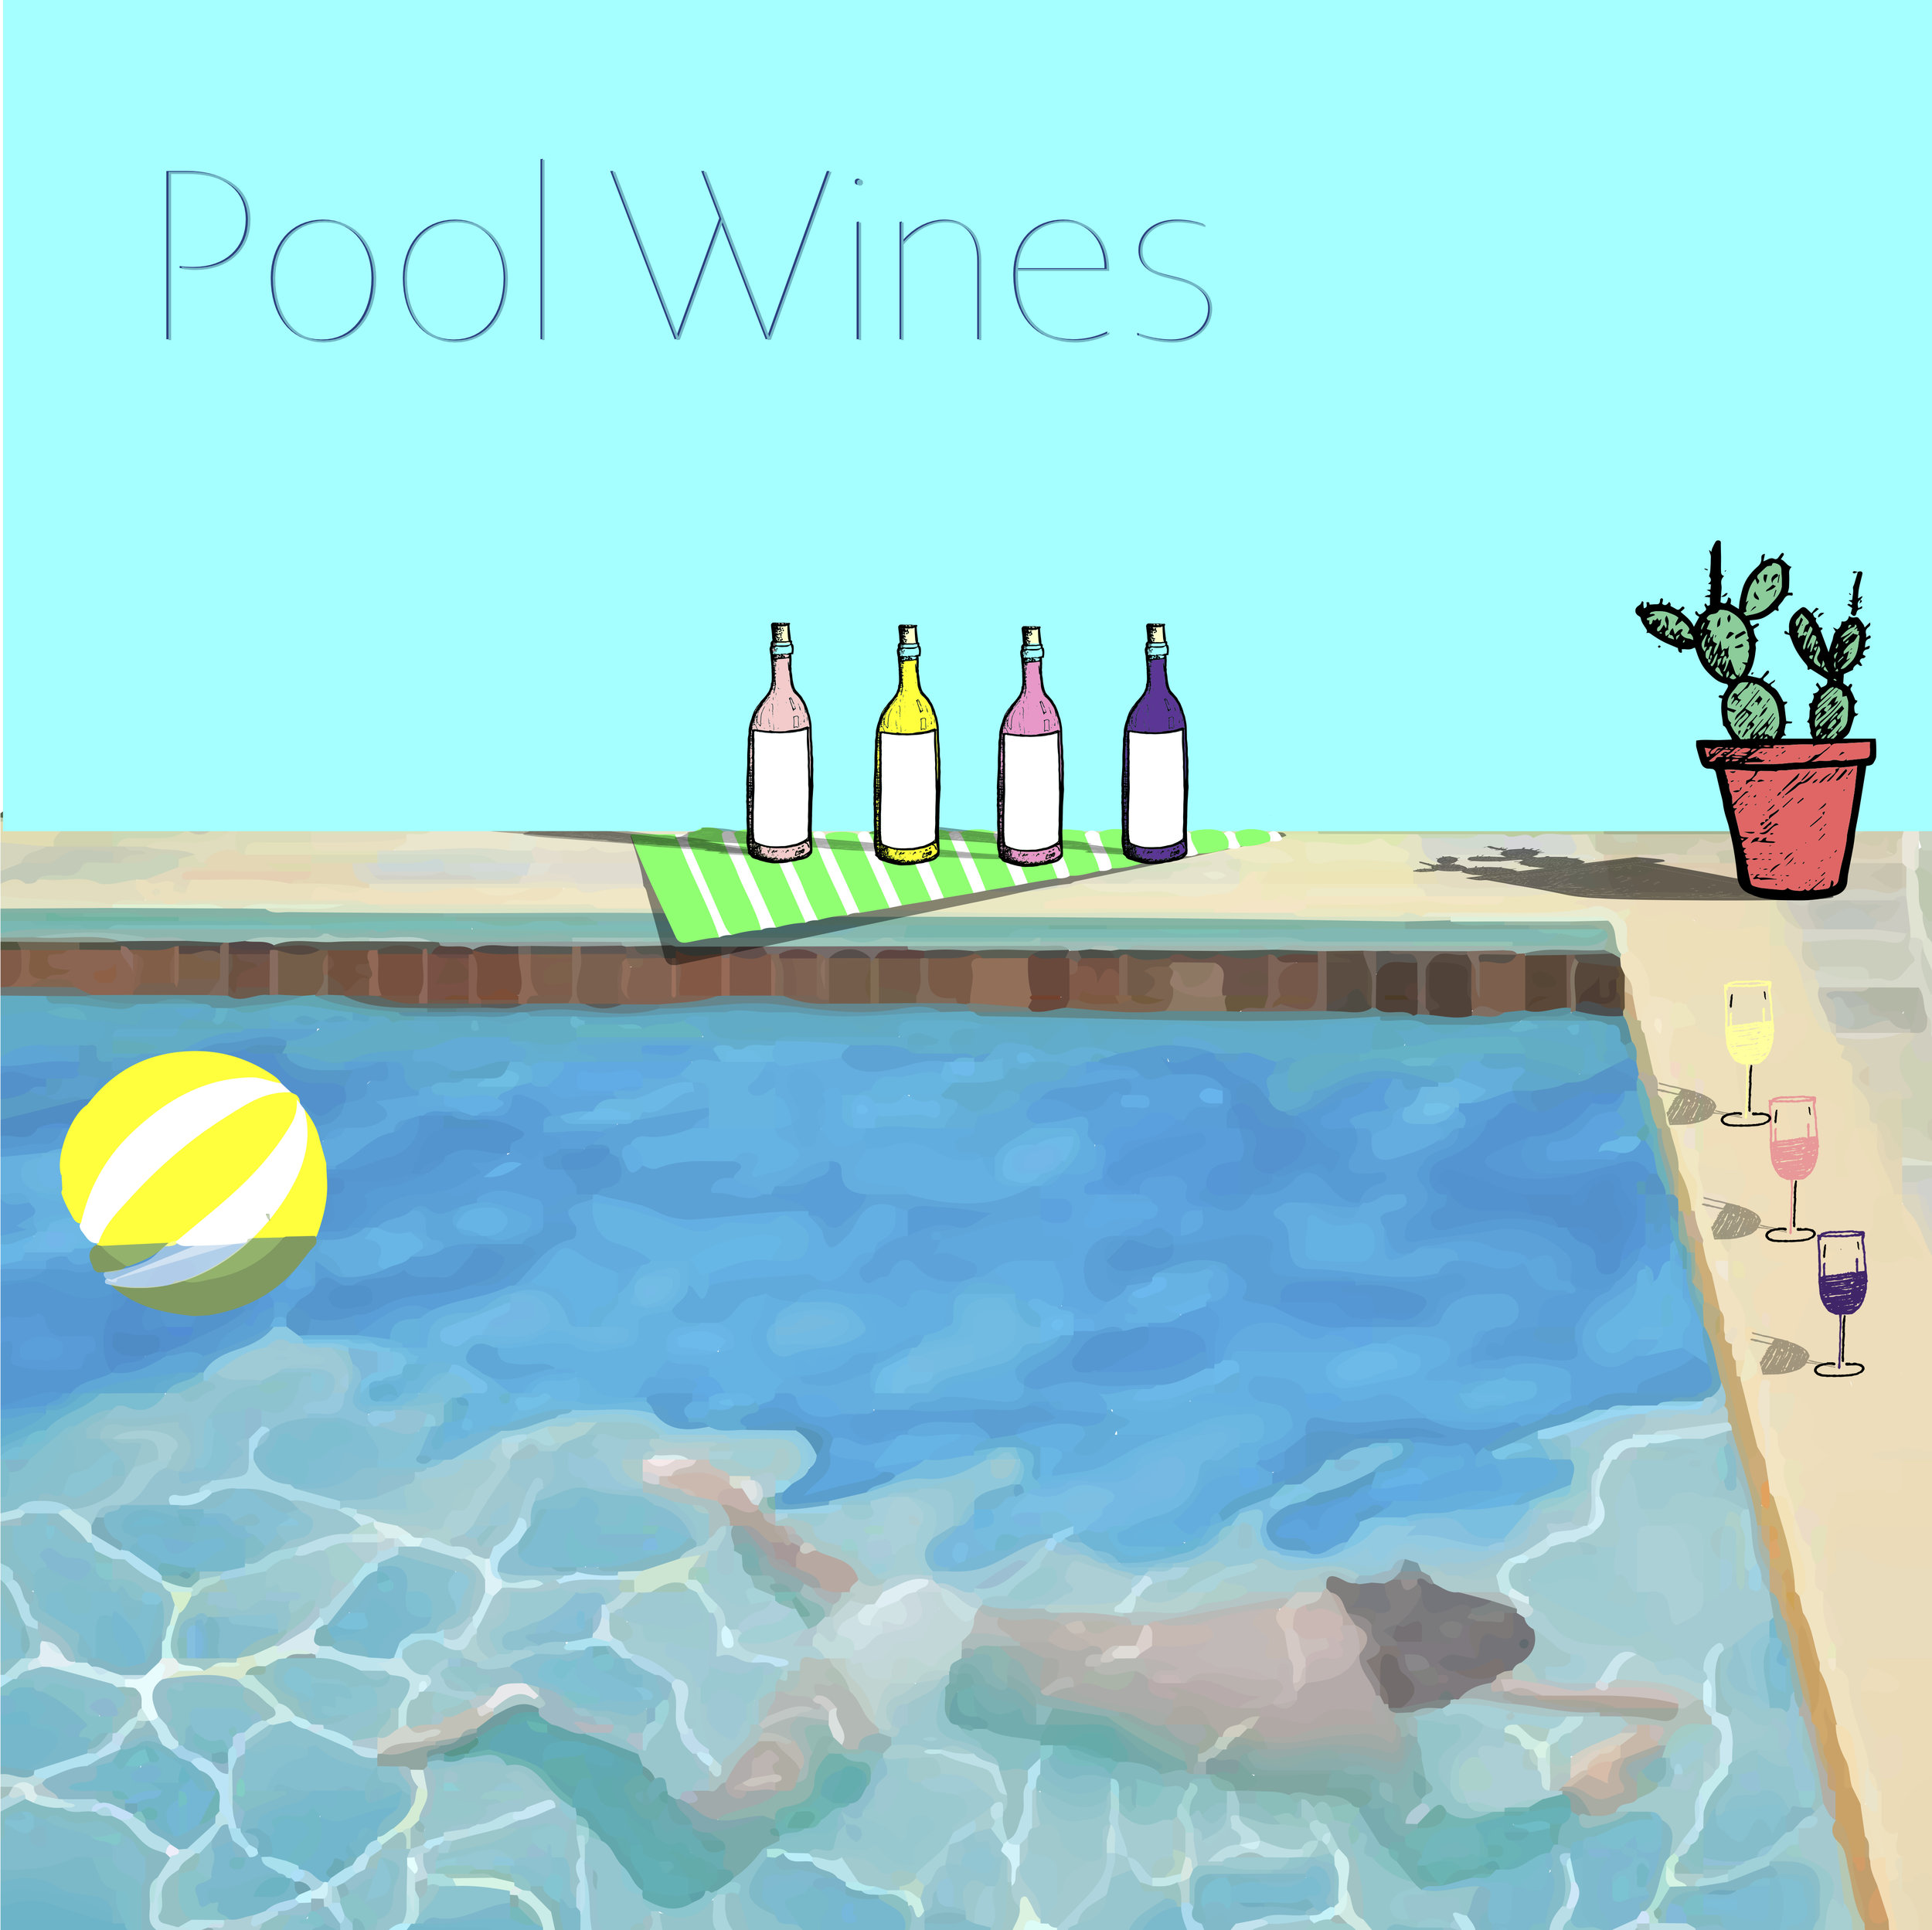 pool wines - June 15, 2019Based on popular demand — and us just needing an excuse to drink wine by the pool, we're offering a wine class, poolside, featuring the most quaffable, gulpable, thirst-quenching summer guzzlers known to mankind.The class will discuss wine pairings for heat and how to choose wines for climate, BBQ, and relentless summer activities. All-the-better, Pool Wines will be taught in and around a vintage, private pool in South Austin.The class will run a little over an hour, inside and out, with plenty of hang time afterwards by / in the pool. Consider this a perfect Father's day gift! Gift Certificates available below.BYO Floaty.